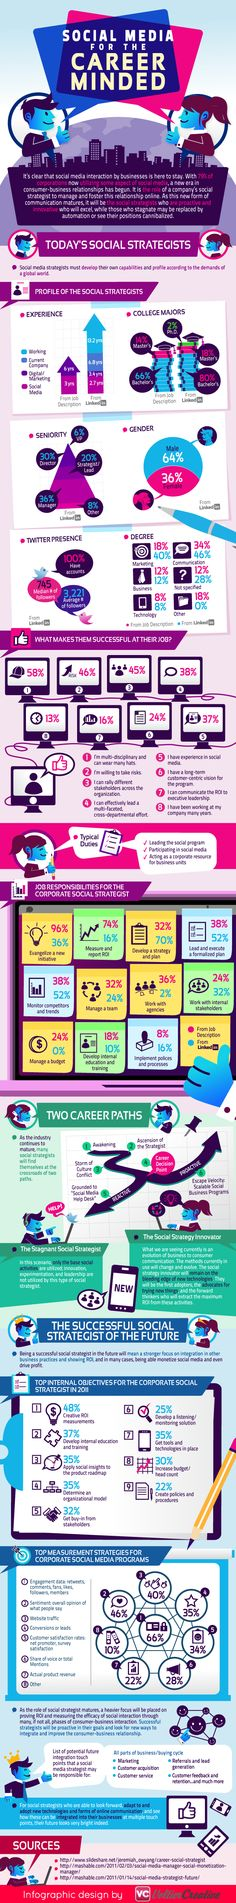 Social Media for Career Minded #infographics